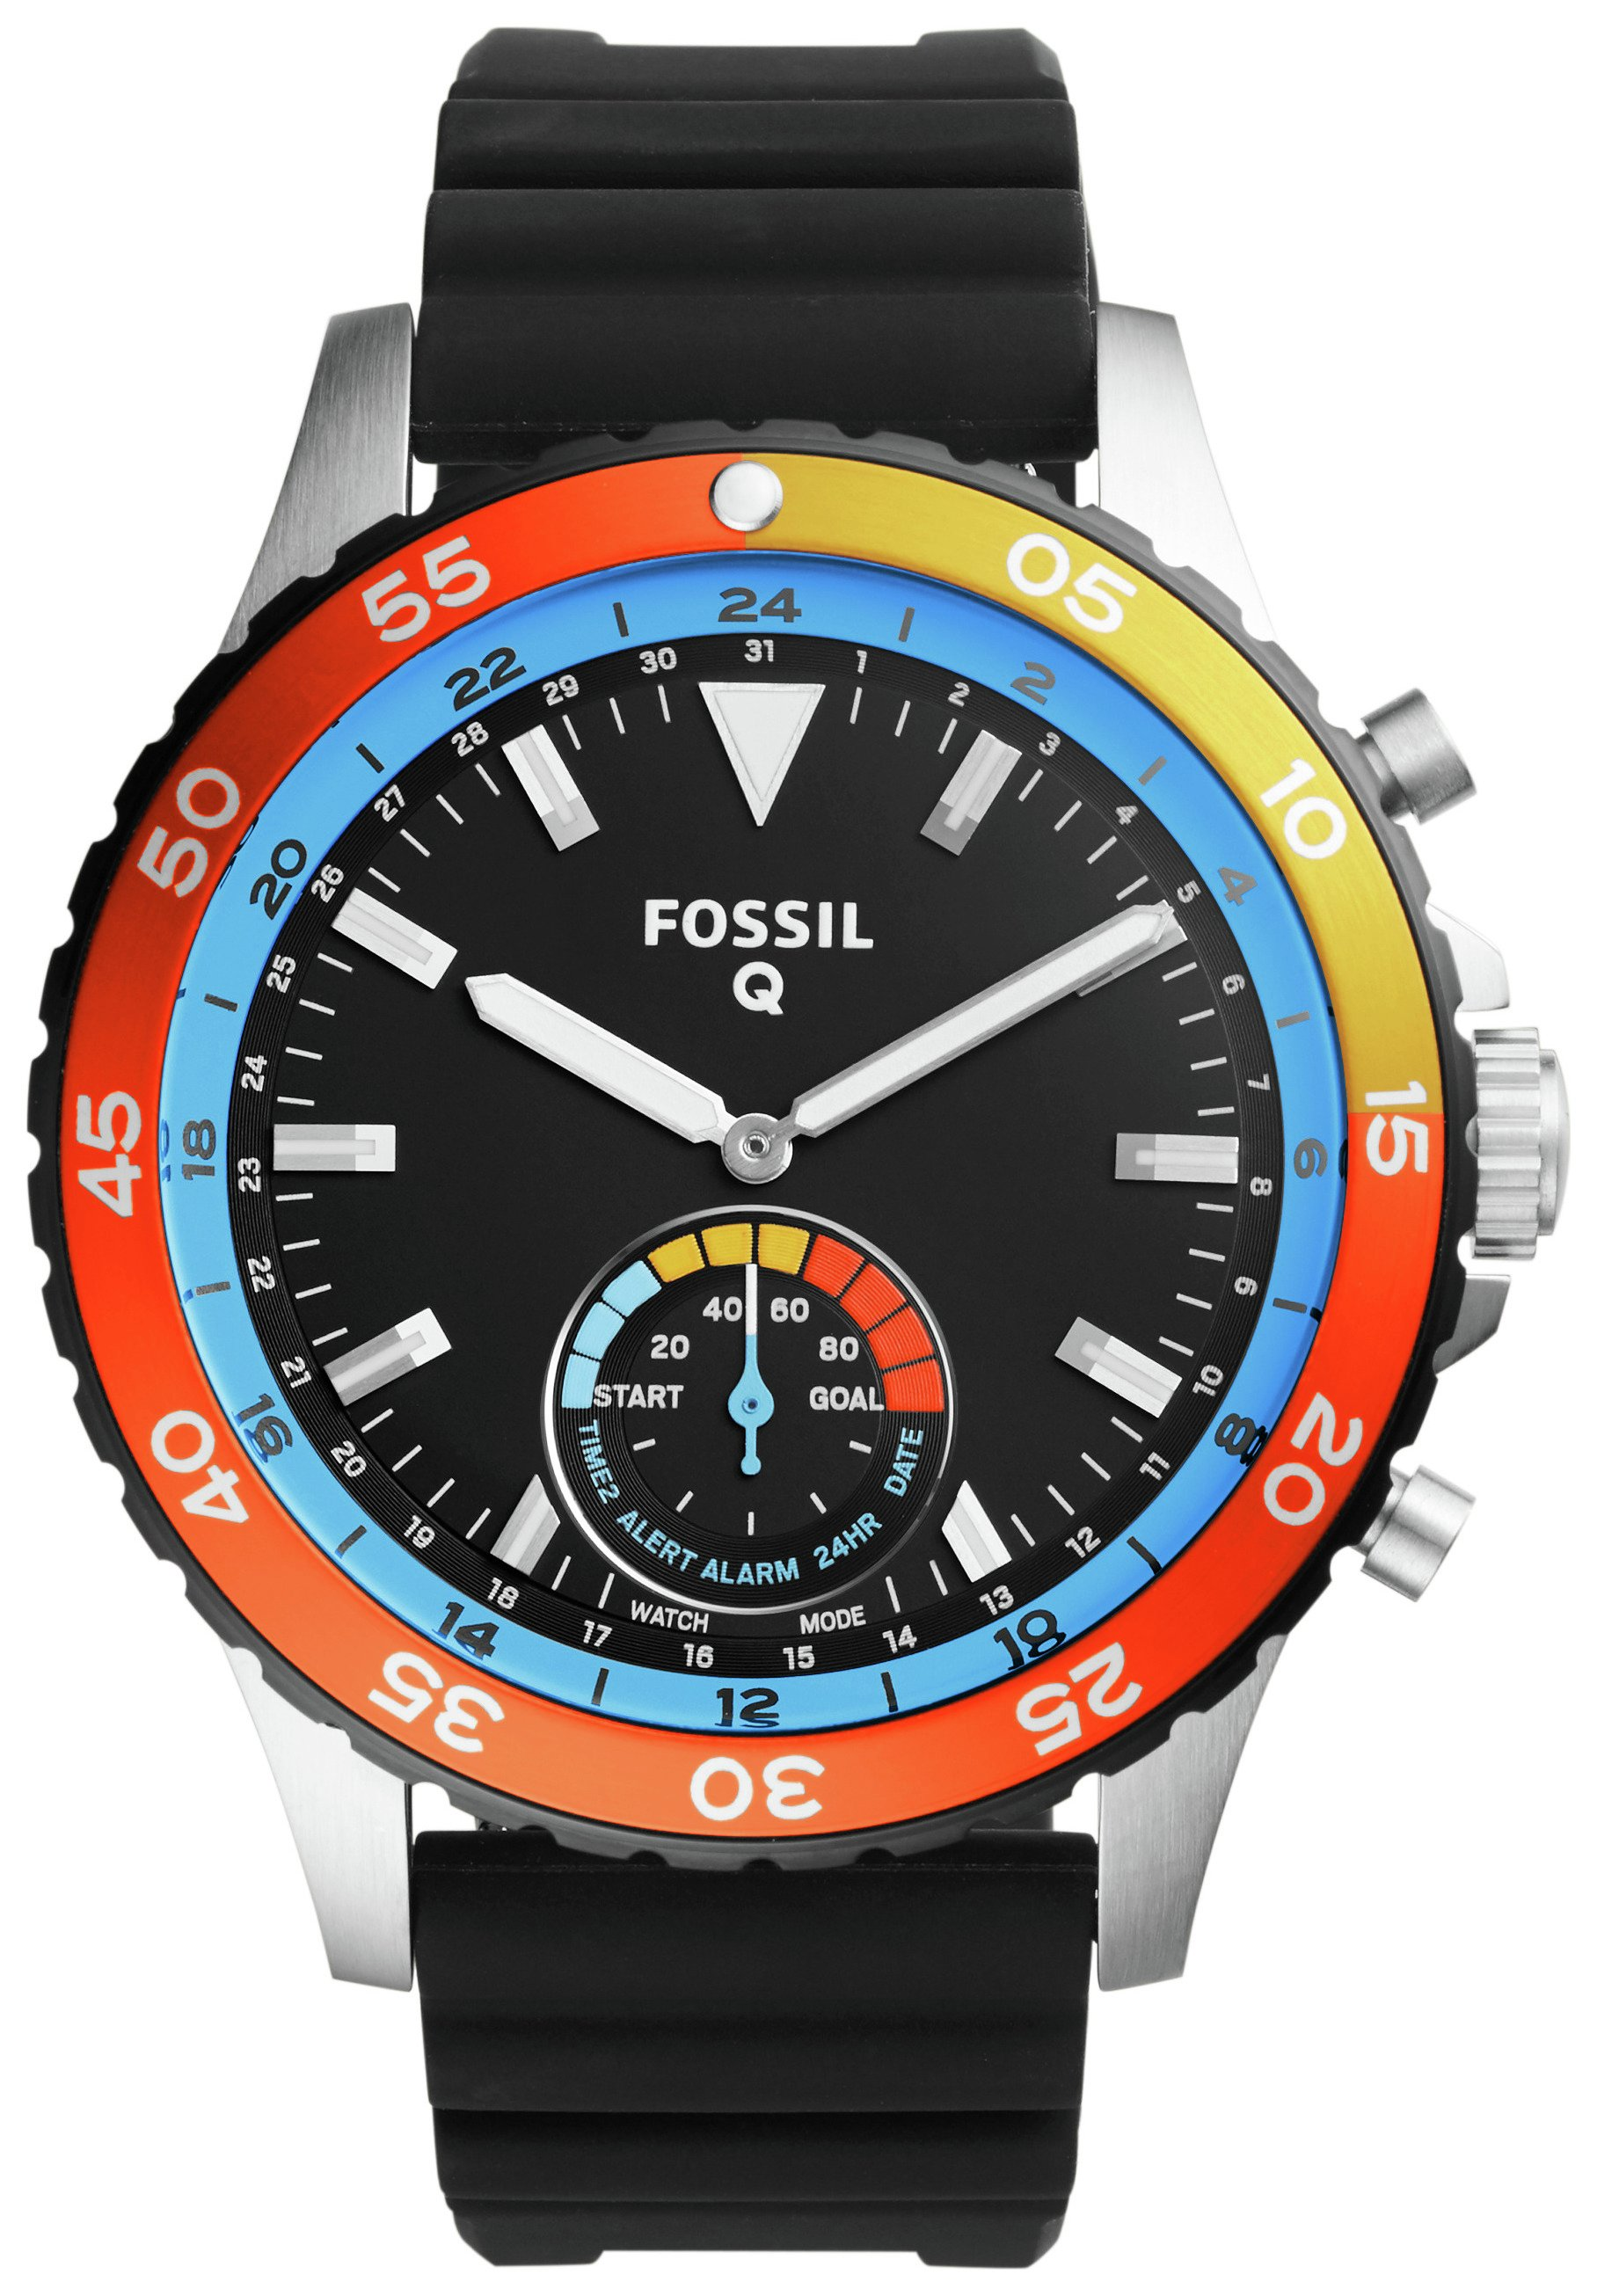 Image of Fossil Q Crewmaster Black Silicone Strap Hybrid Smart Watch